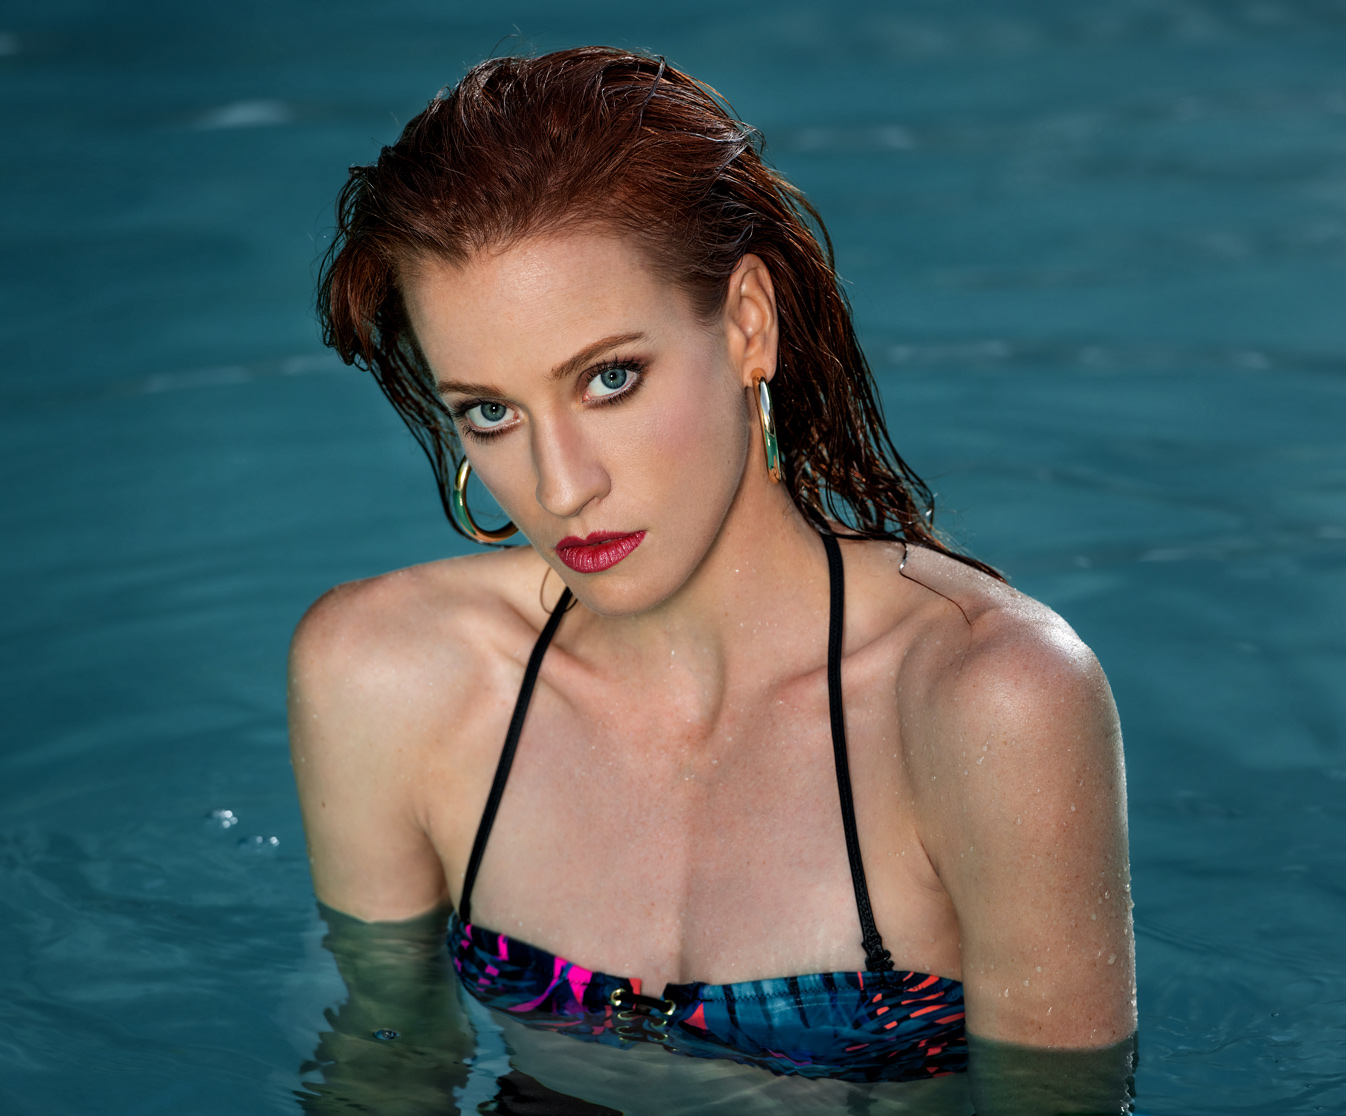 headshot of model in swimming pool